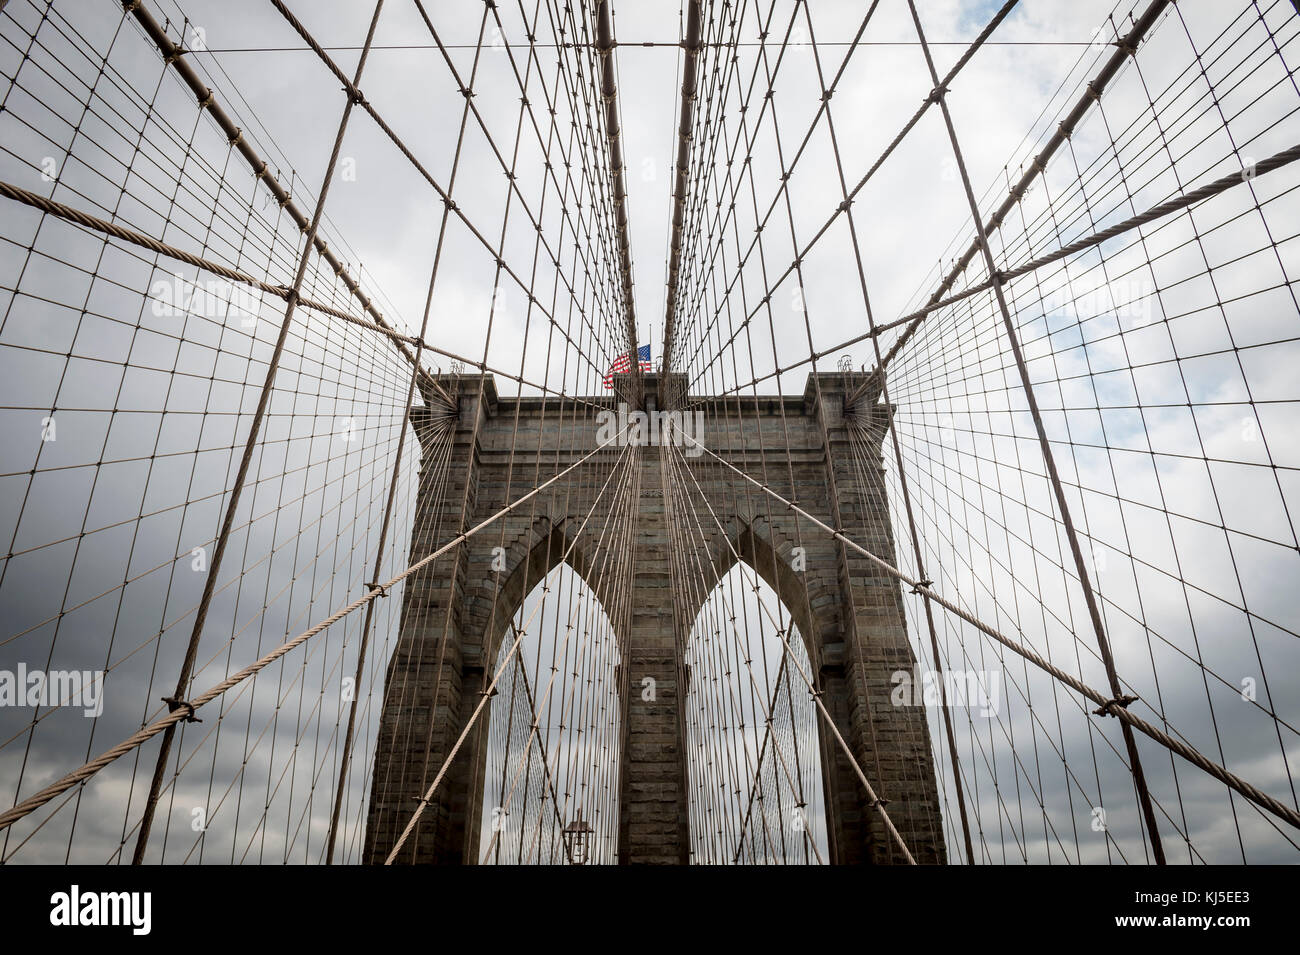 Brooklyn Bridge, New York City close up architectural detail - Stock Image